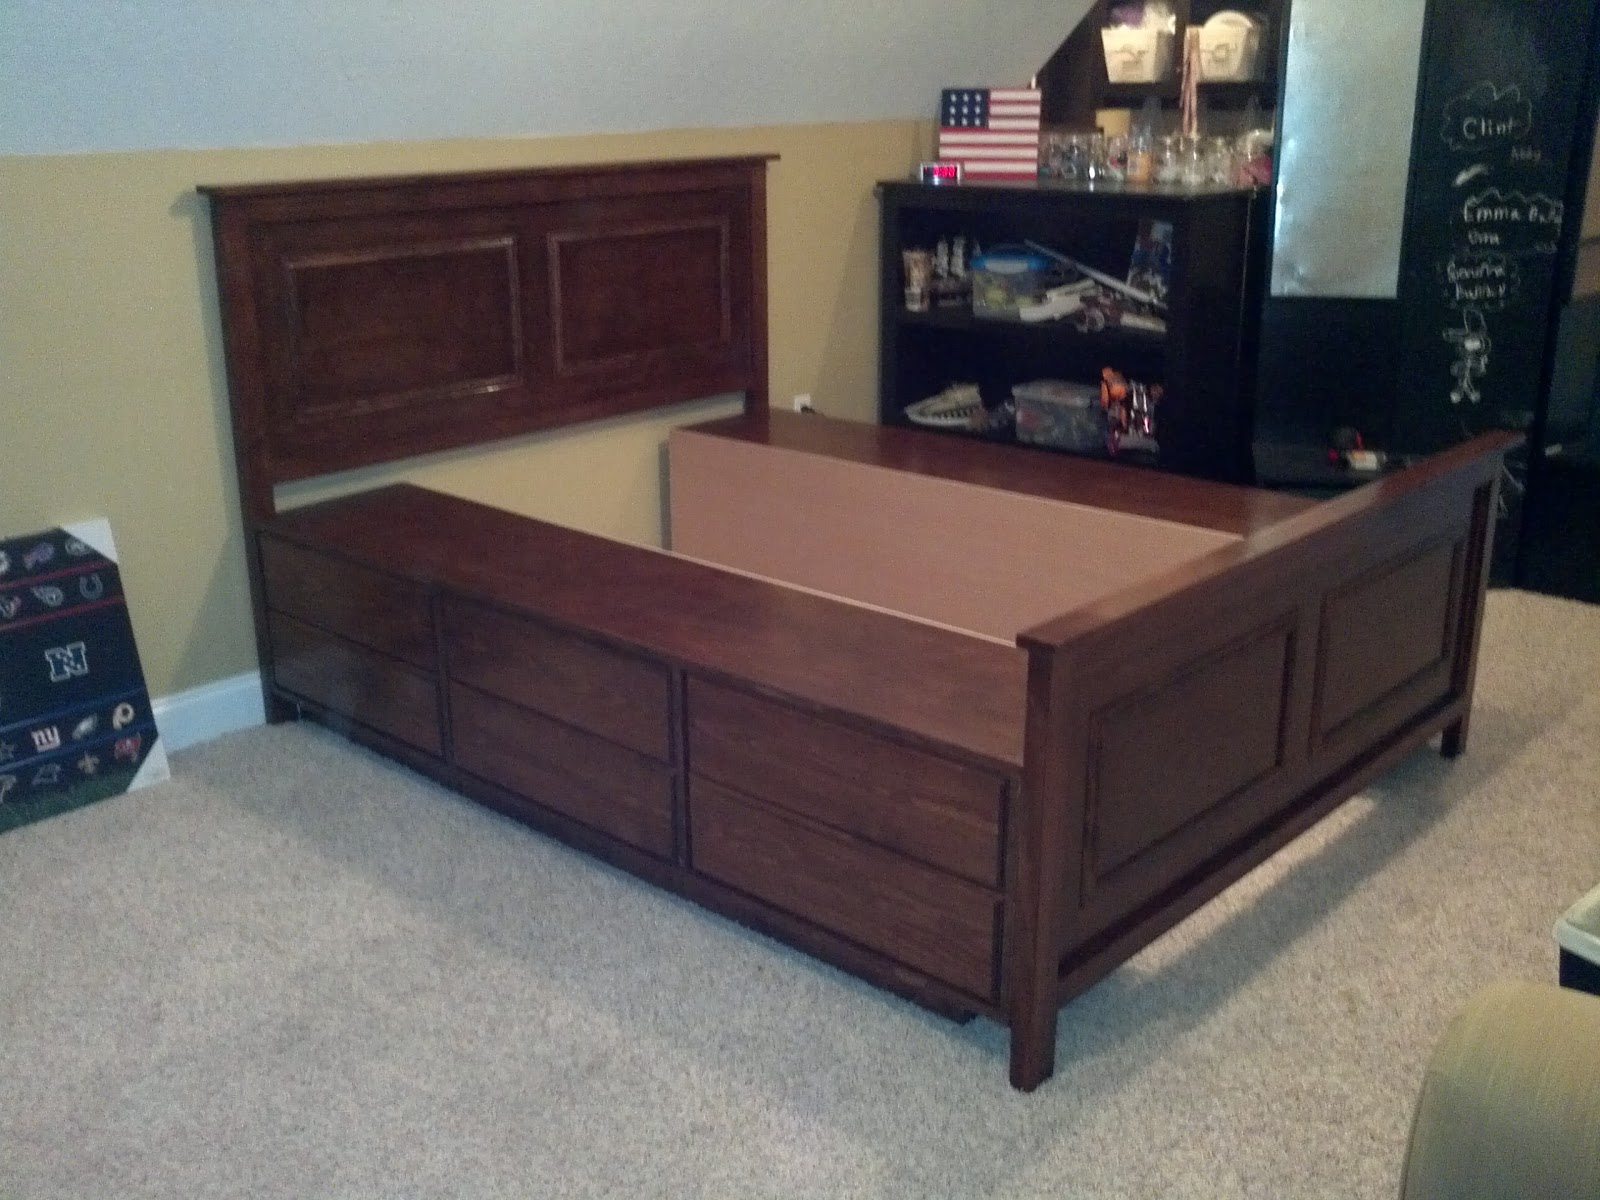 Permalink to how to make a queen size platform bed with storage